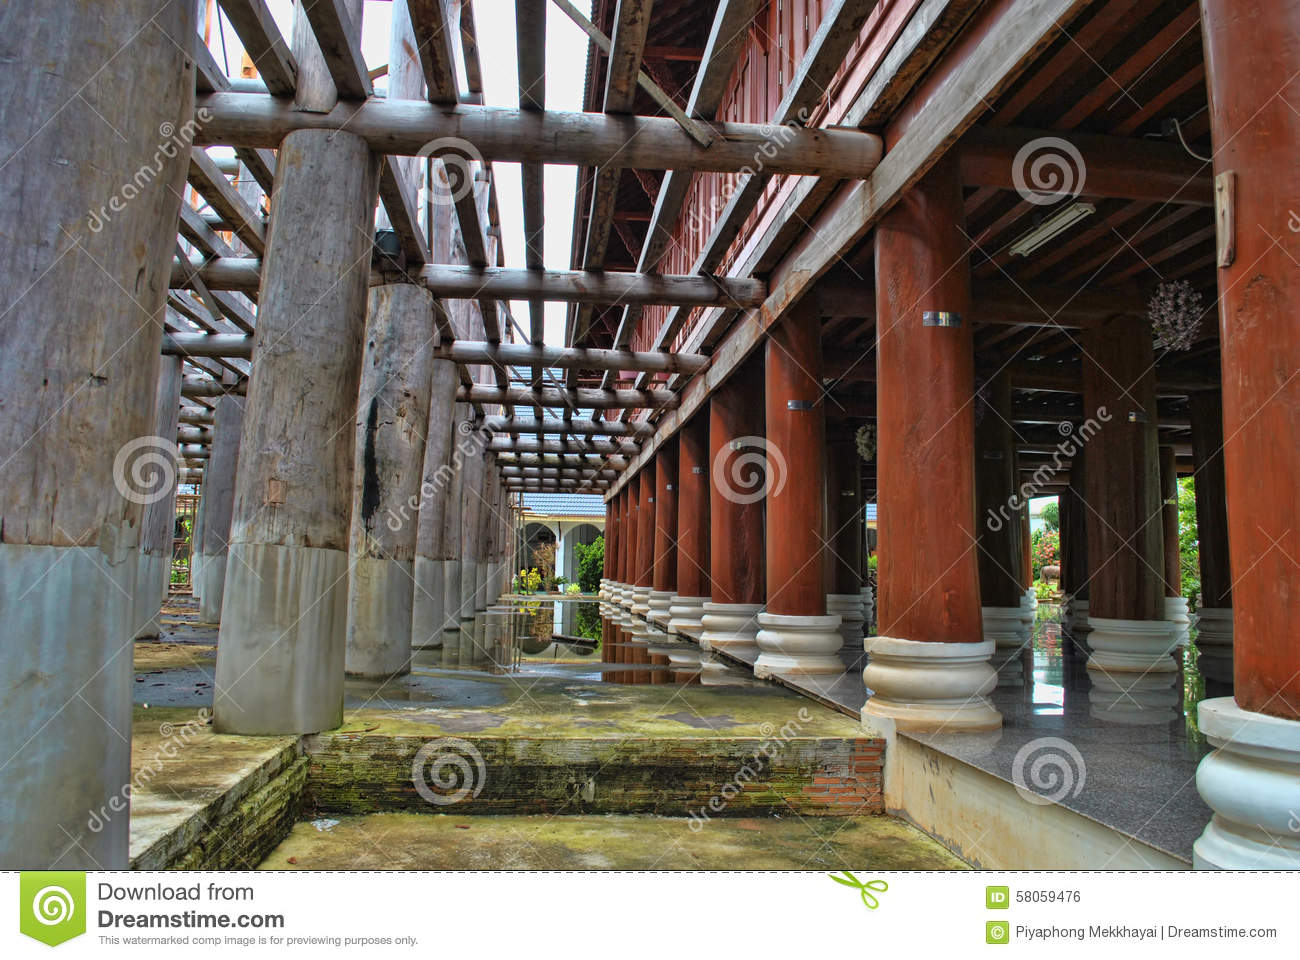 Wooden pillar and beam with a floor area pool side royalty for Floor pillars